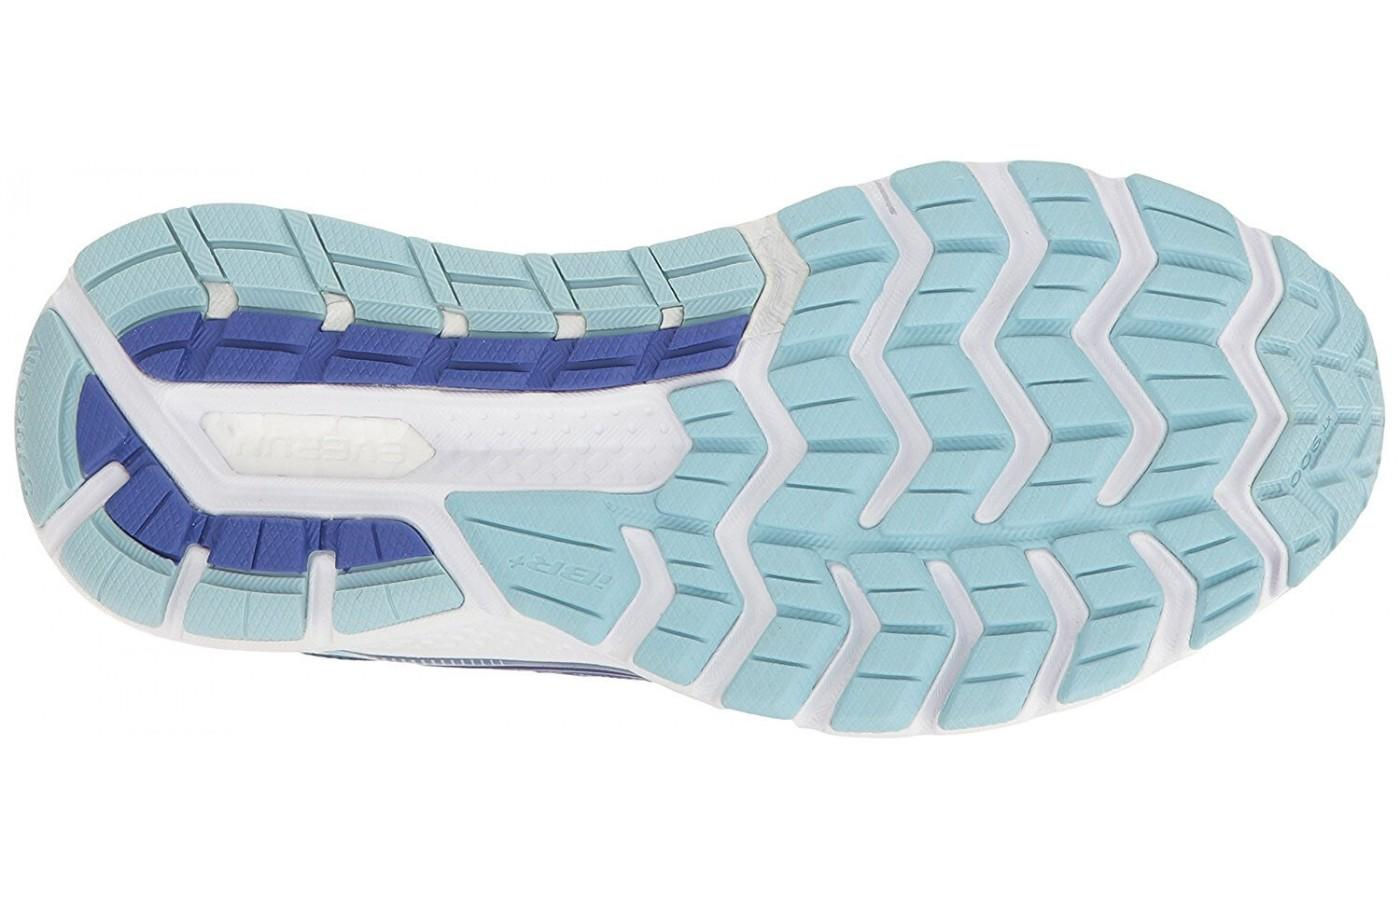 f0670022e9f Saucony Hurricane ISO 3 - To Buy or Not in May 2019